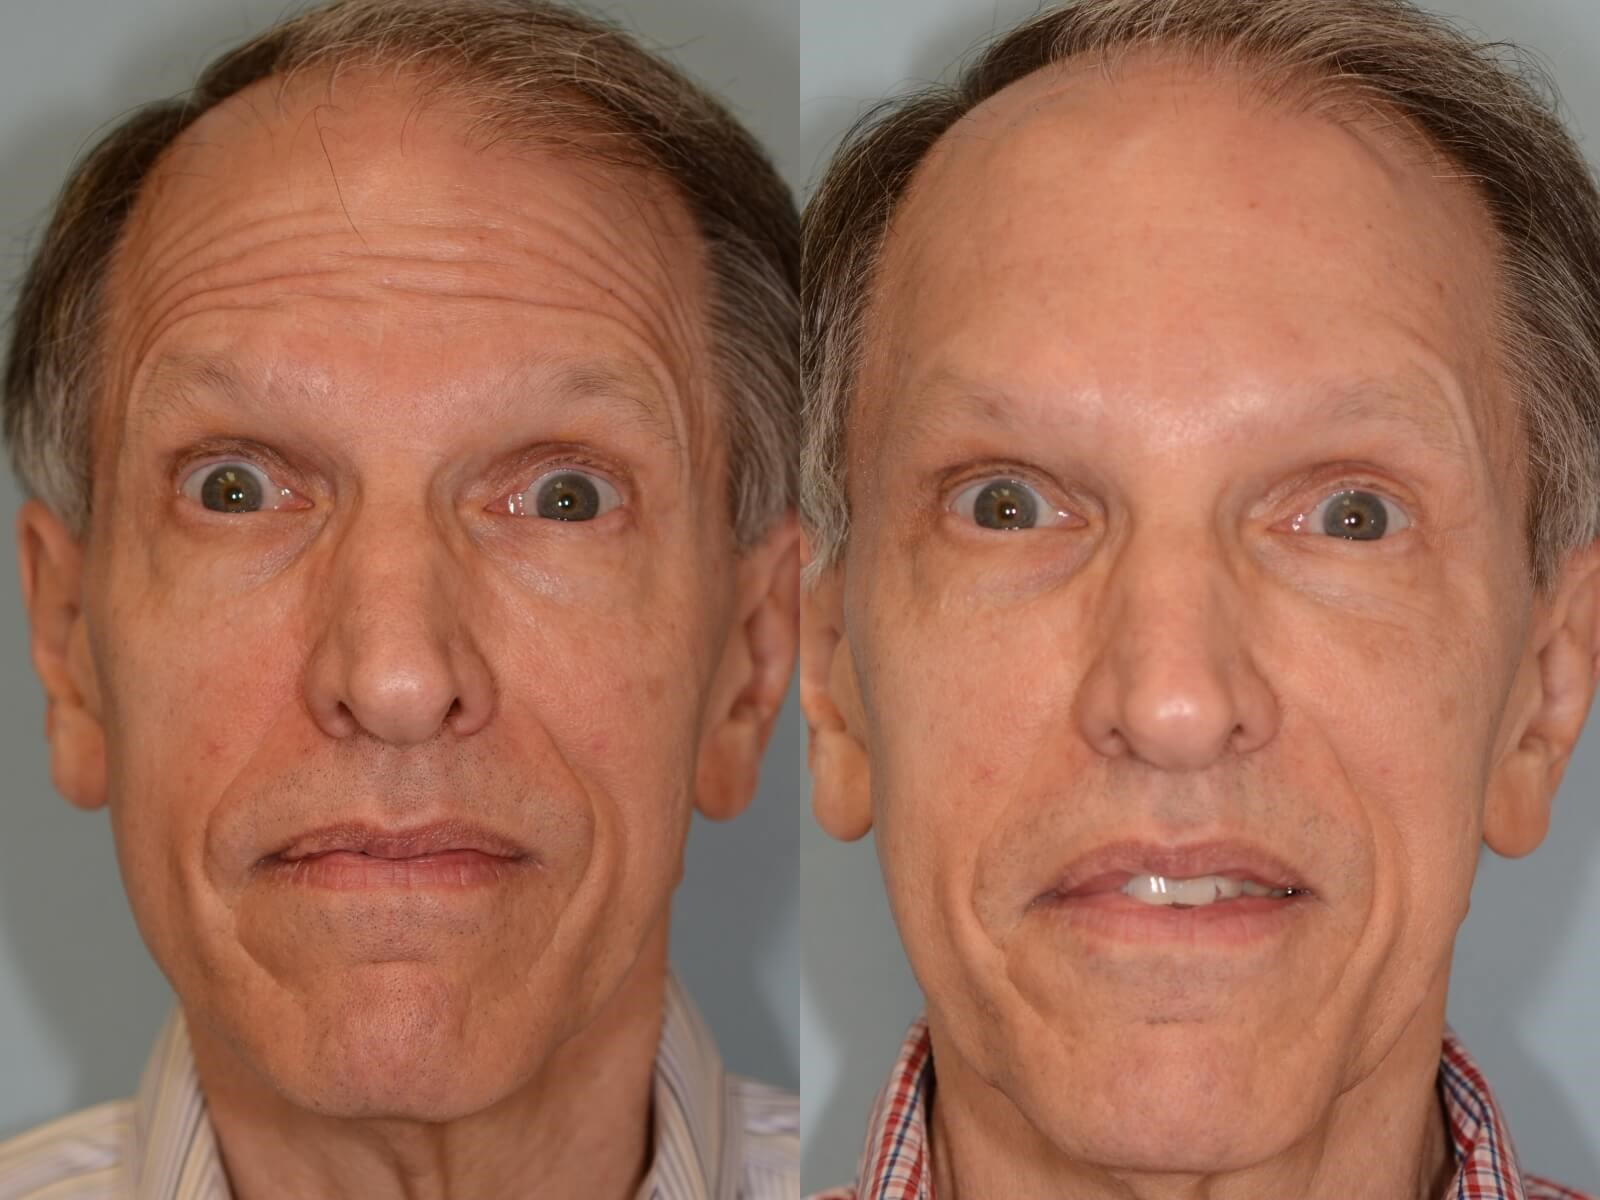 Before and After Brow Lift Photos